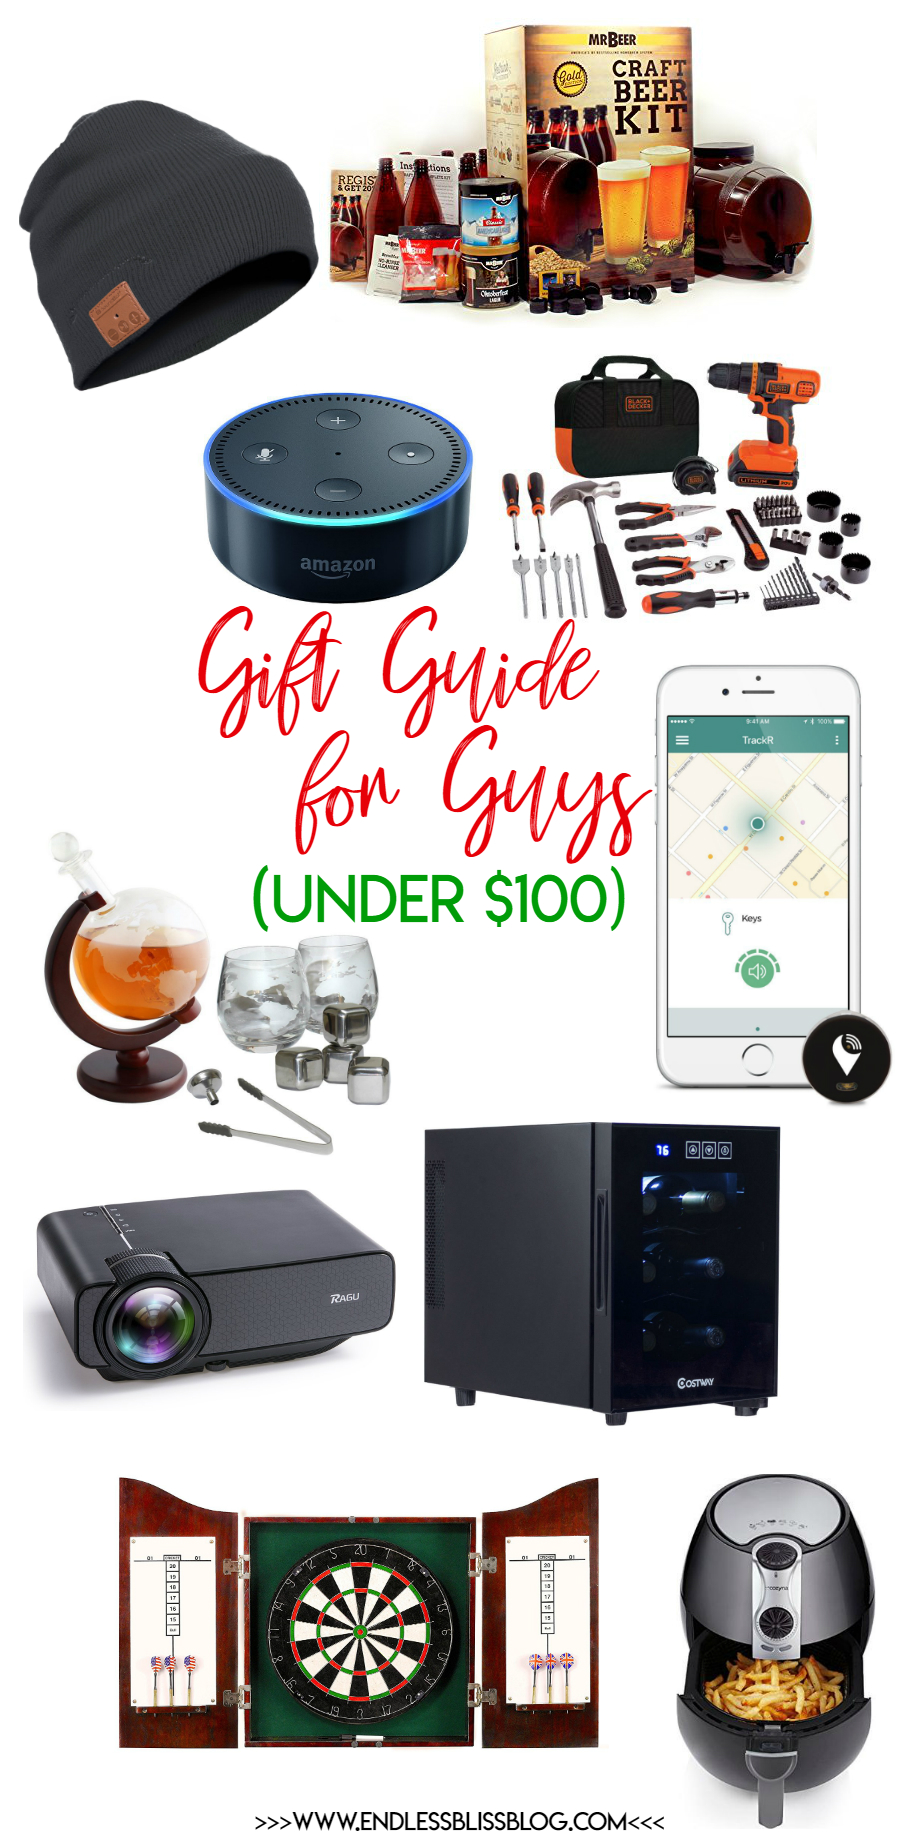 Gift-Guide-for-Guys-1.jpg